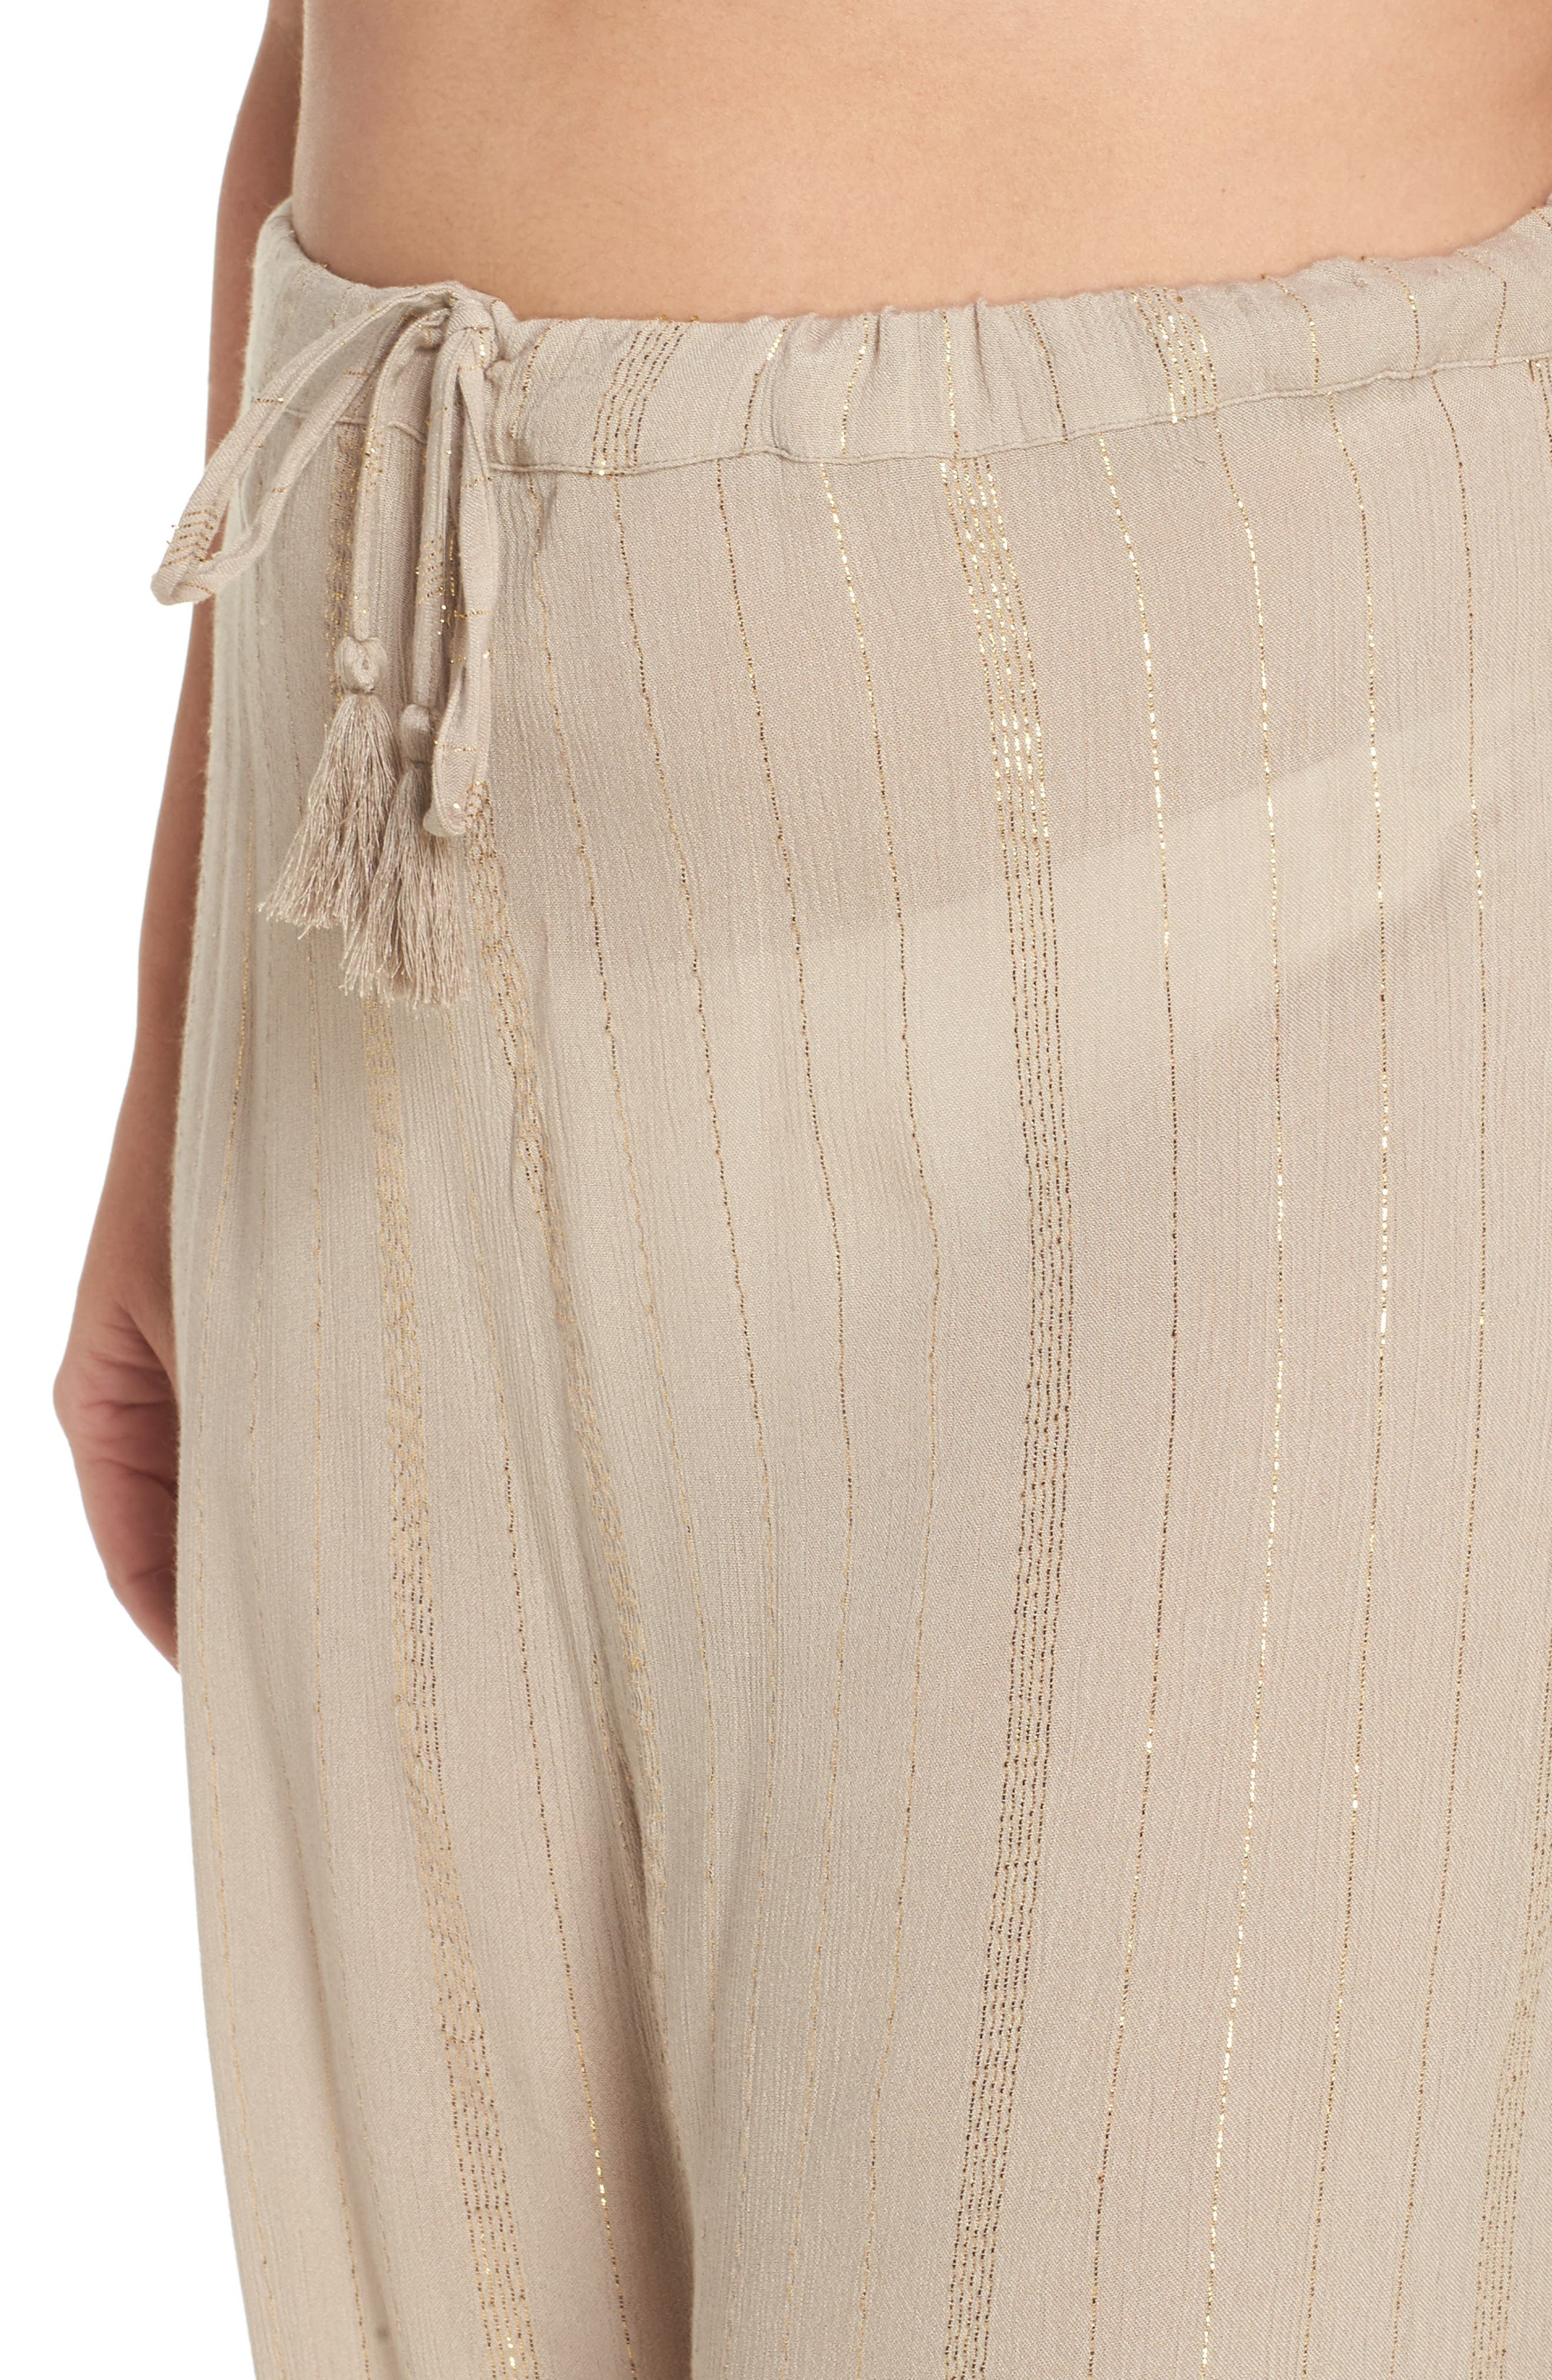 Iris Cover-Up Pants,                             Alternate thumbnail 4, color,